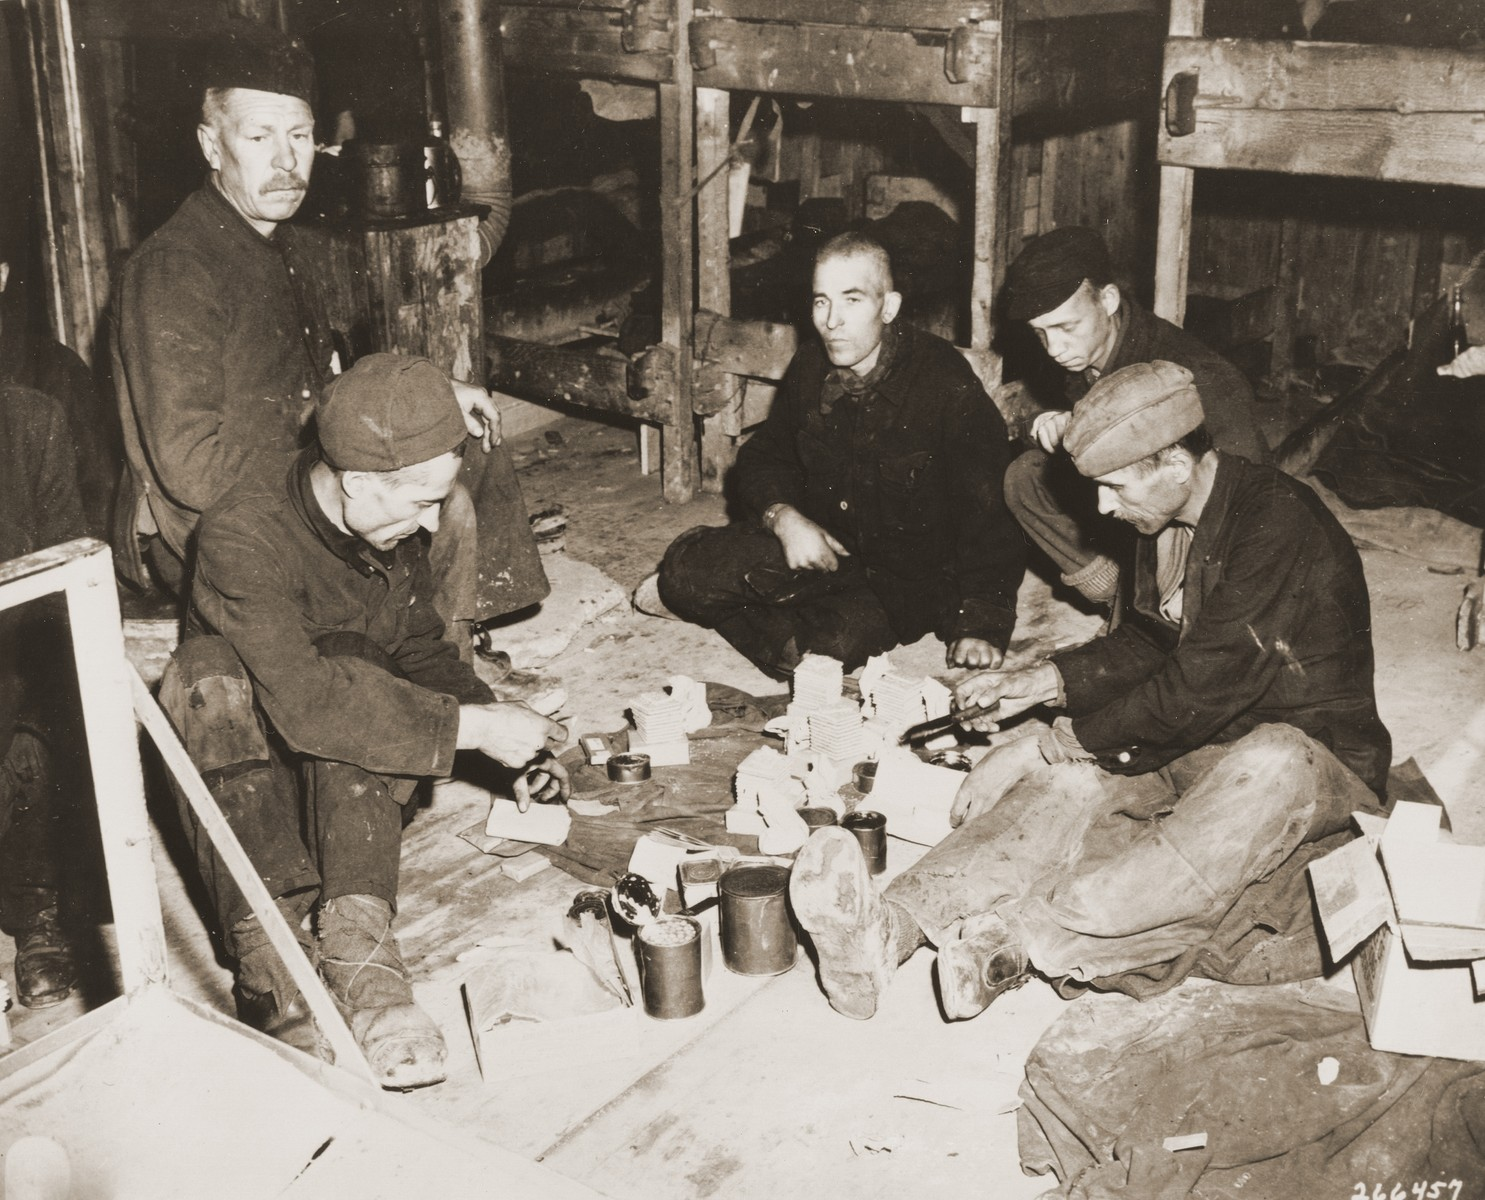 """A group of Soviet POWs share rations in the newly liberated Hemer POW camp.  Original caption: """"These gaunt-faced Soviets share a 10-in-1 ration supply kit furnished by men of a unit of the 75th Infantry Division, U.S. Ninth Army.  Soviet doctors at the camp say many of the inmates will die from malnutrition, tuberculosis, dysentery, and typhus.  Approximately 22,000 men were in the camp when it was liberated by the U.S. Army."""""""